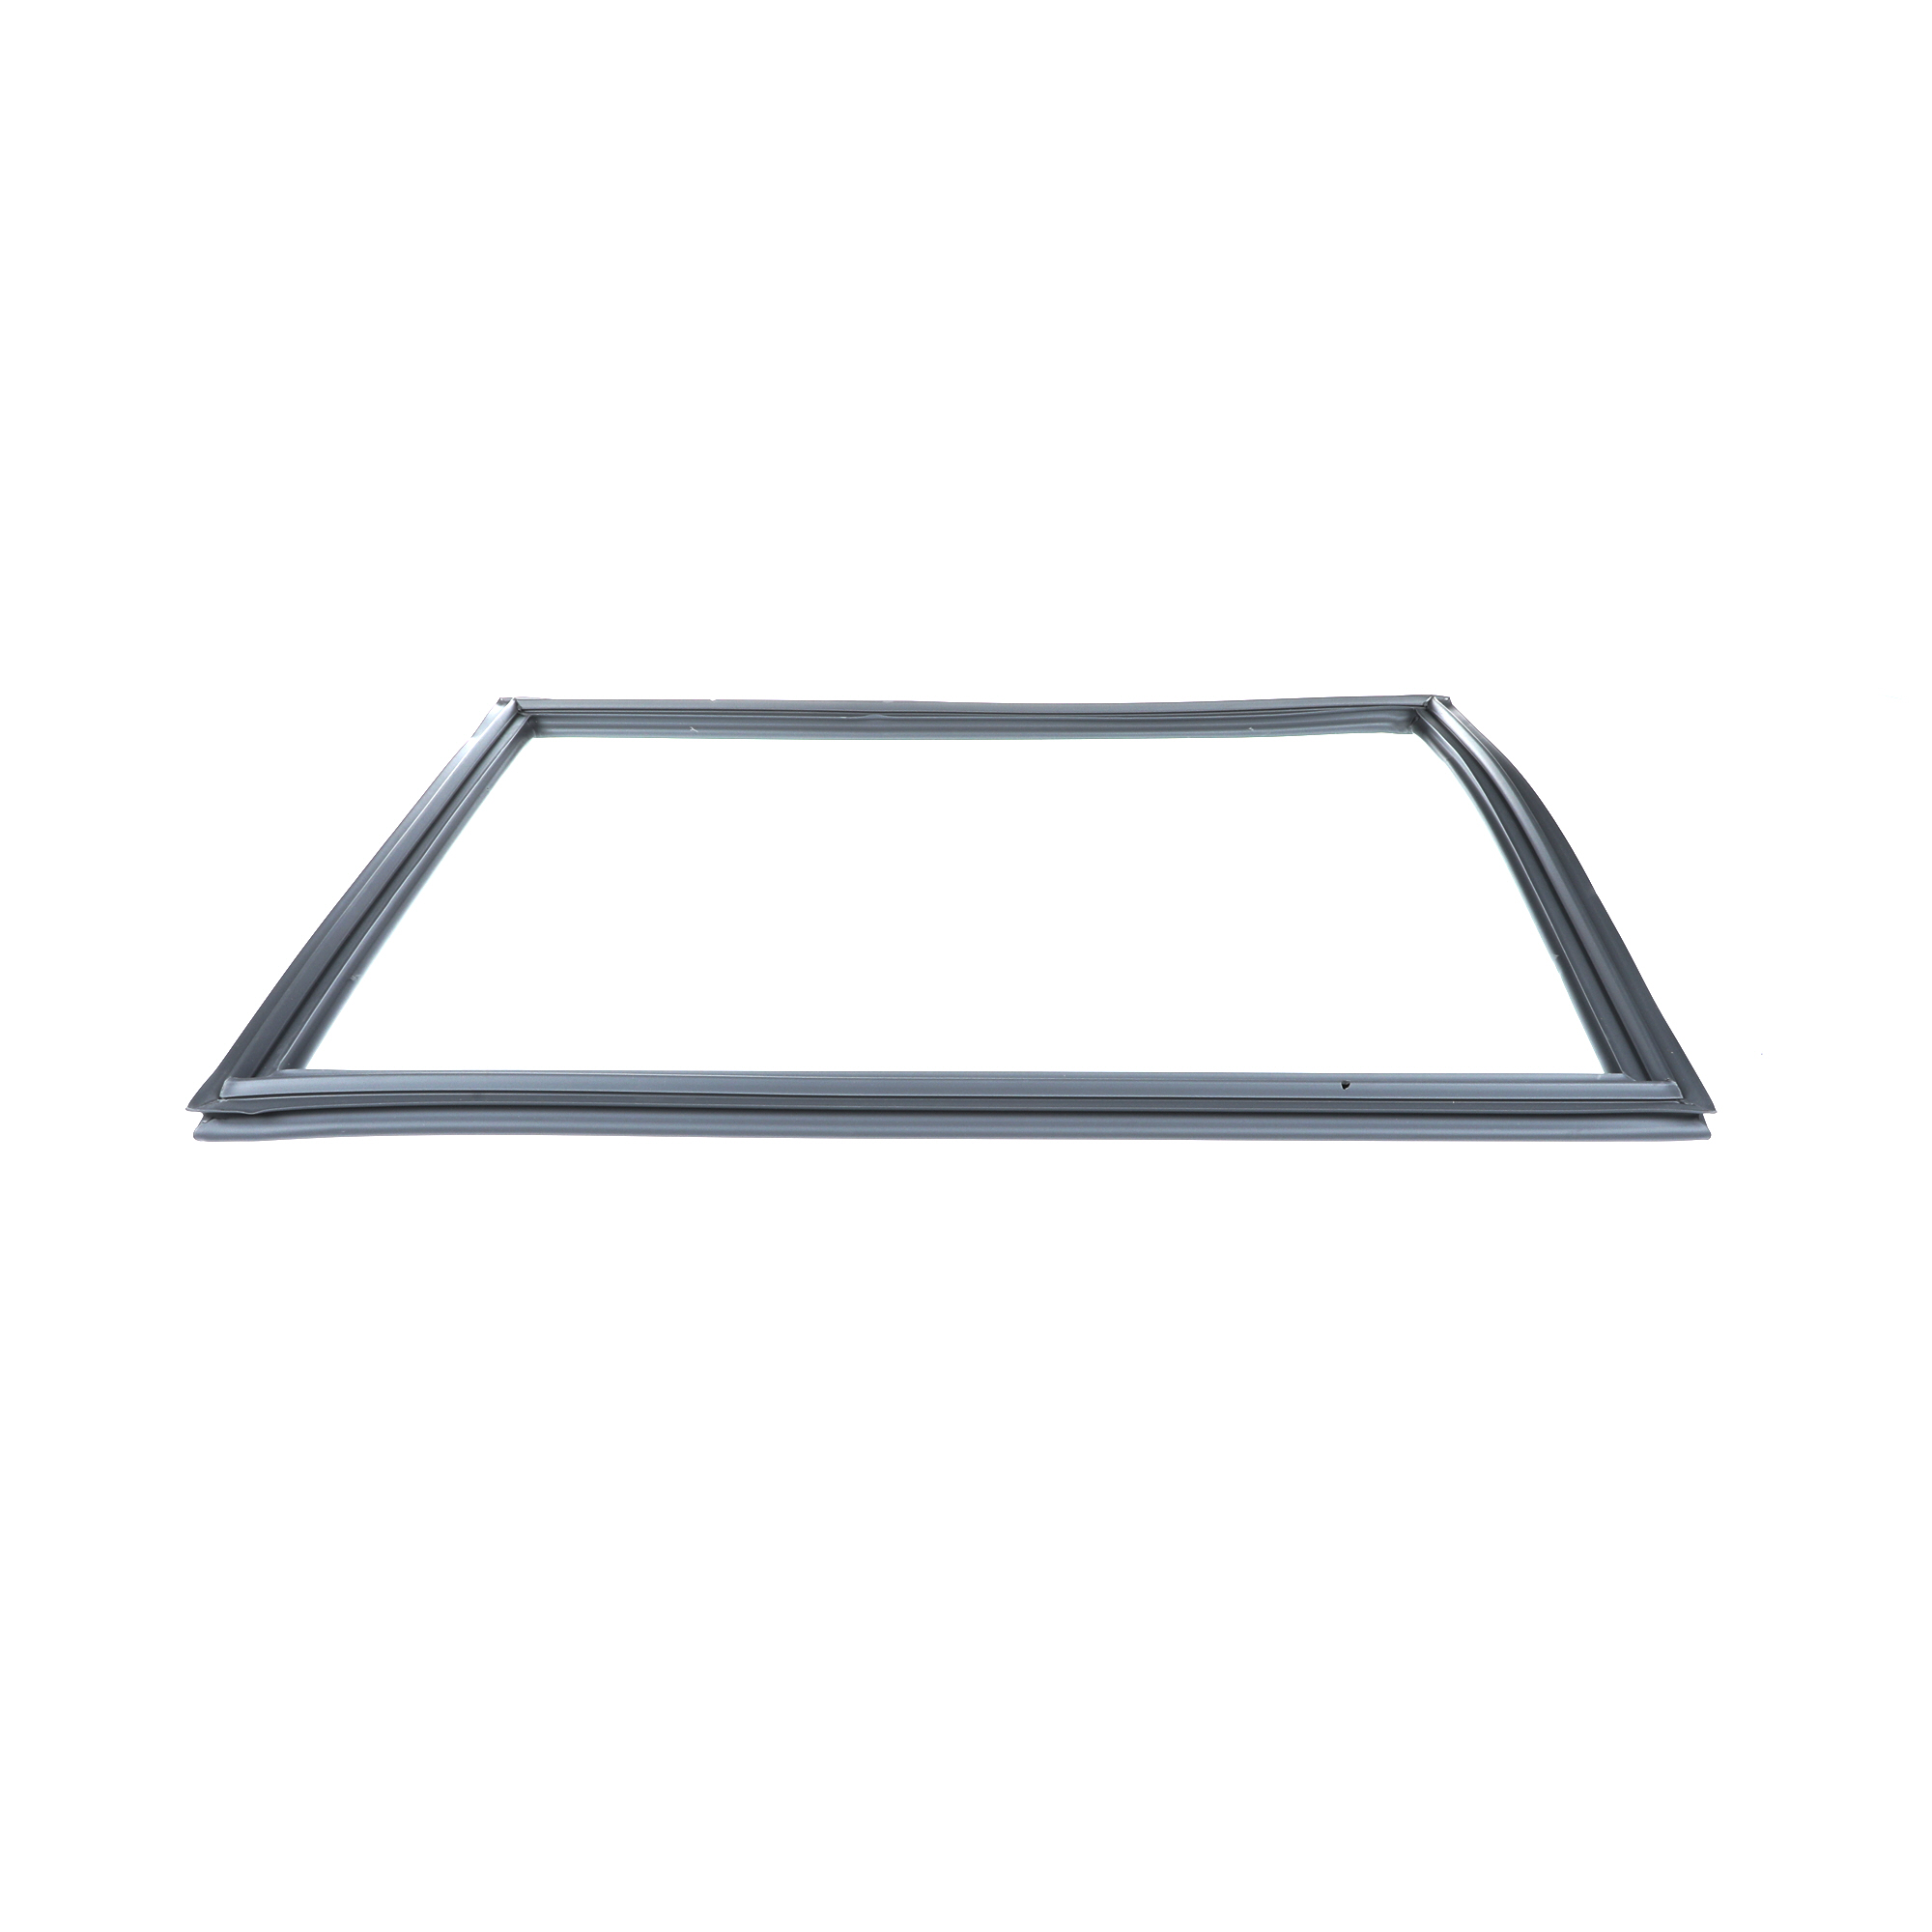 DOOR GASKET 500X415MM